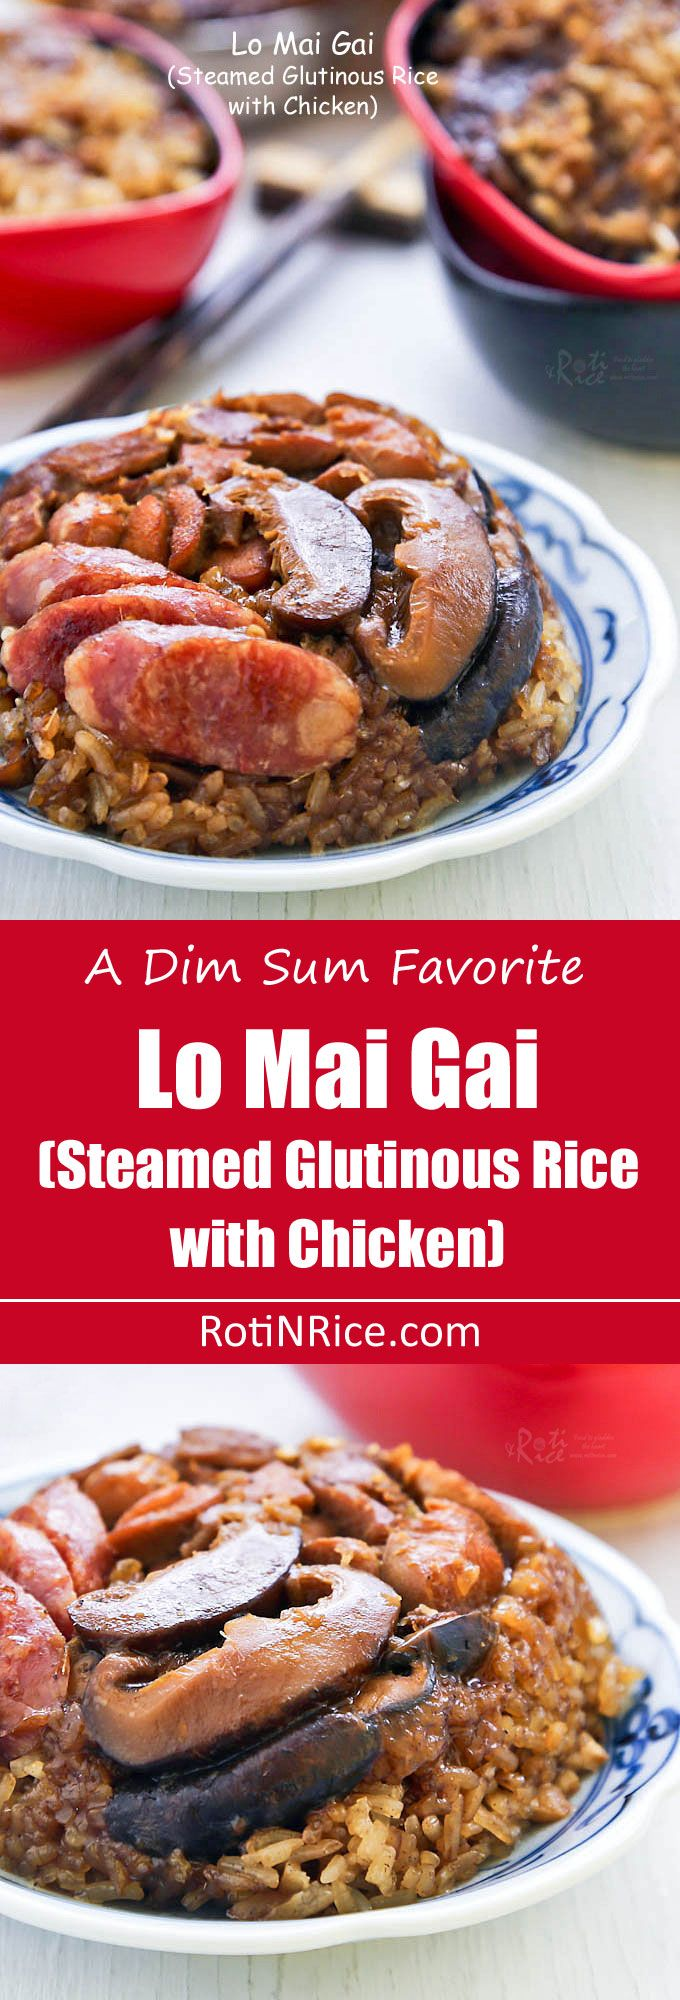 Make Lo Mai Gai (Steamed Glutinous Rice with Chicken), a classic dim sum dish at home with detailed video and step-by-step pictorial instructions. | RotiNRice.com